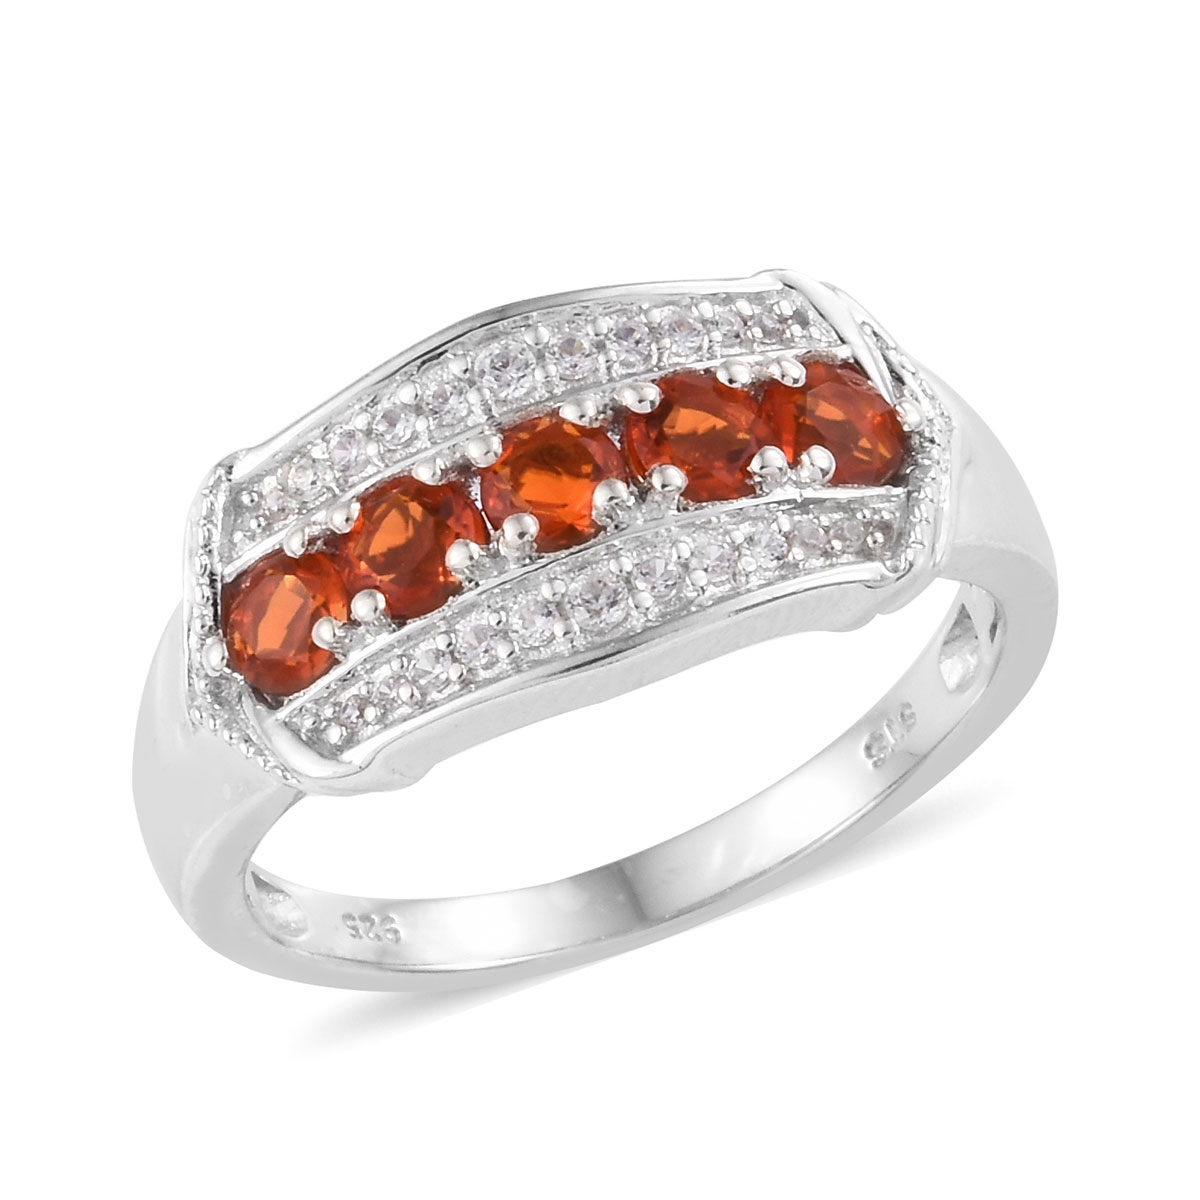 Crimson Fire Opal, Cambodian Zircon Ring in Platinum Over Sterling Silver (Size 8.0) 0.82 ctw